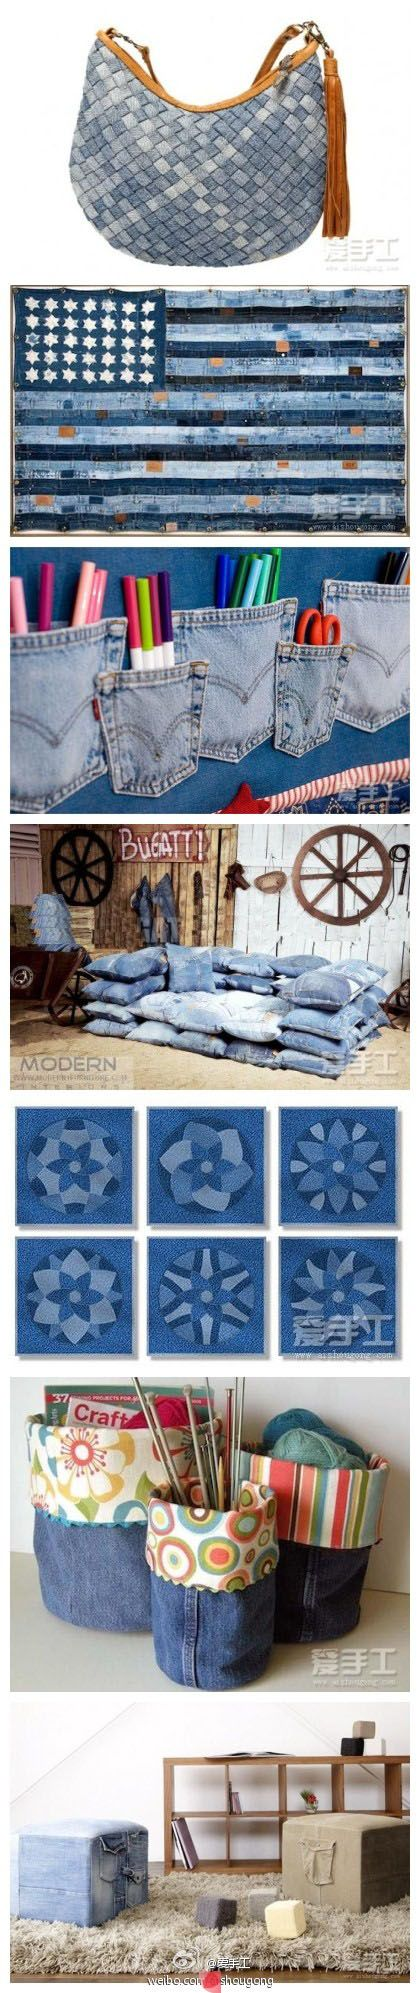 like the denim pillow couch